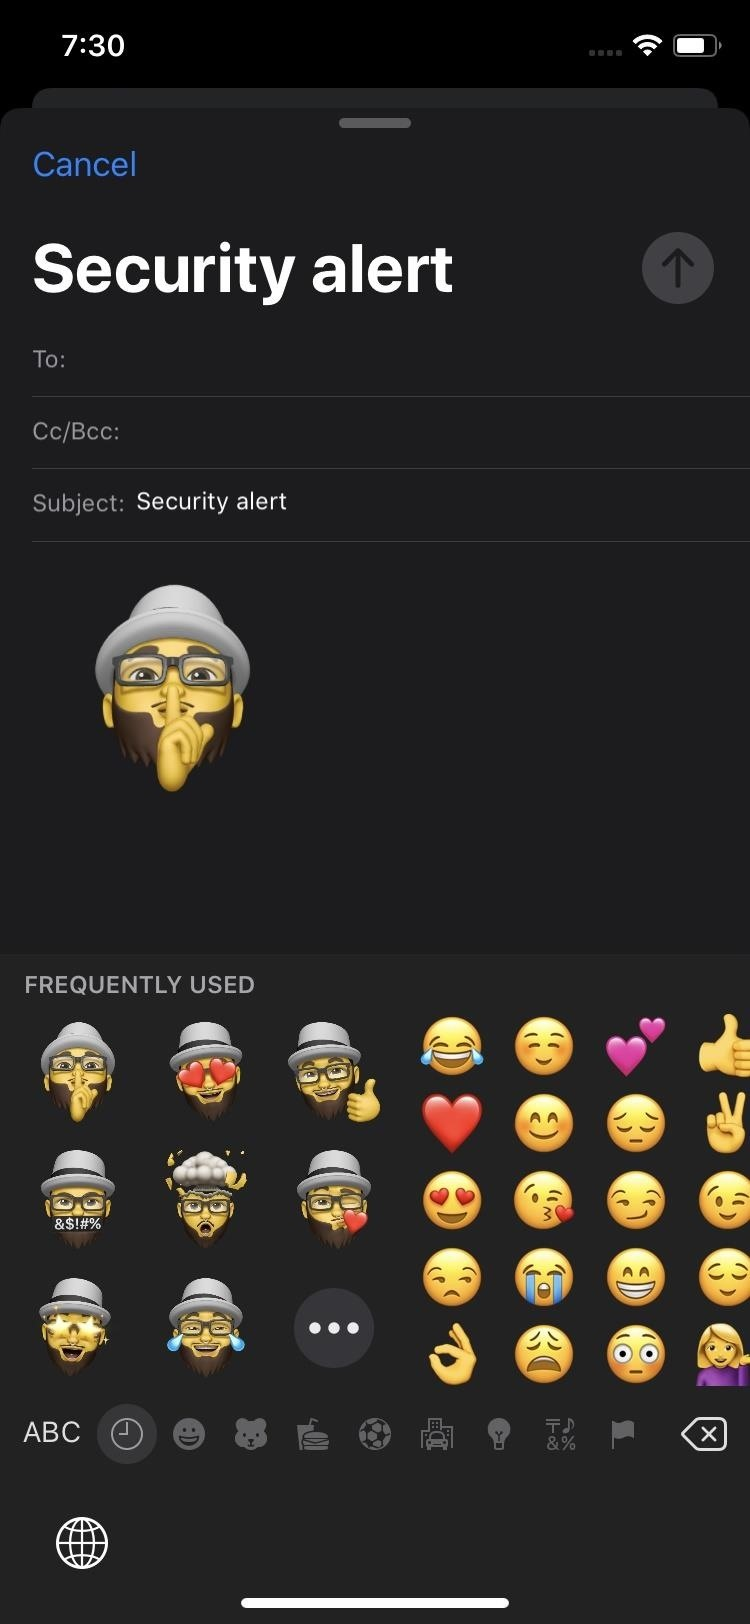 Memoji Stickers, Improved Search & More New Apple Messages Features in iOS 13 for iPhone